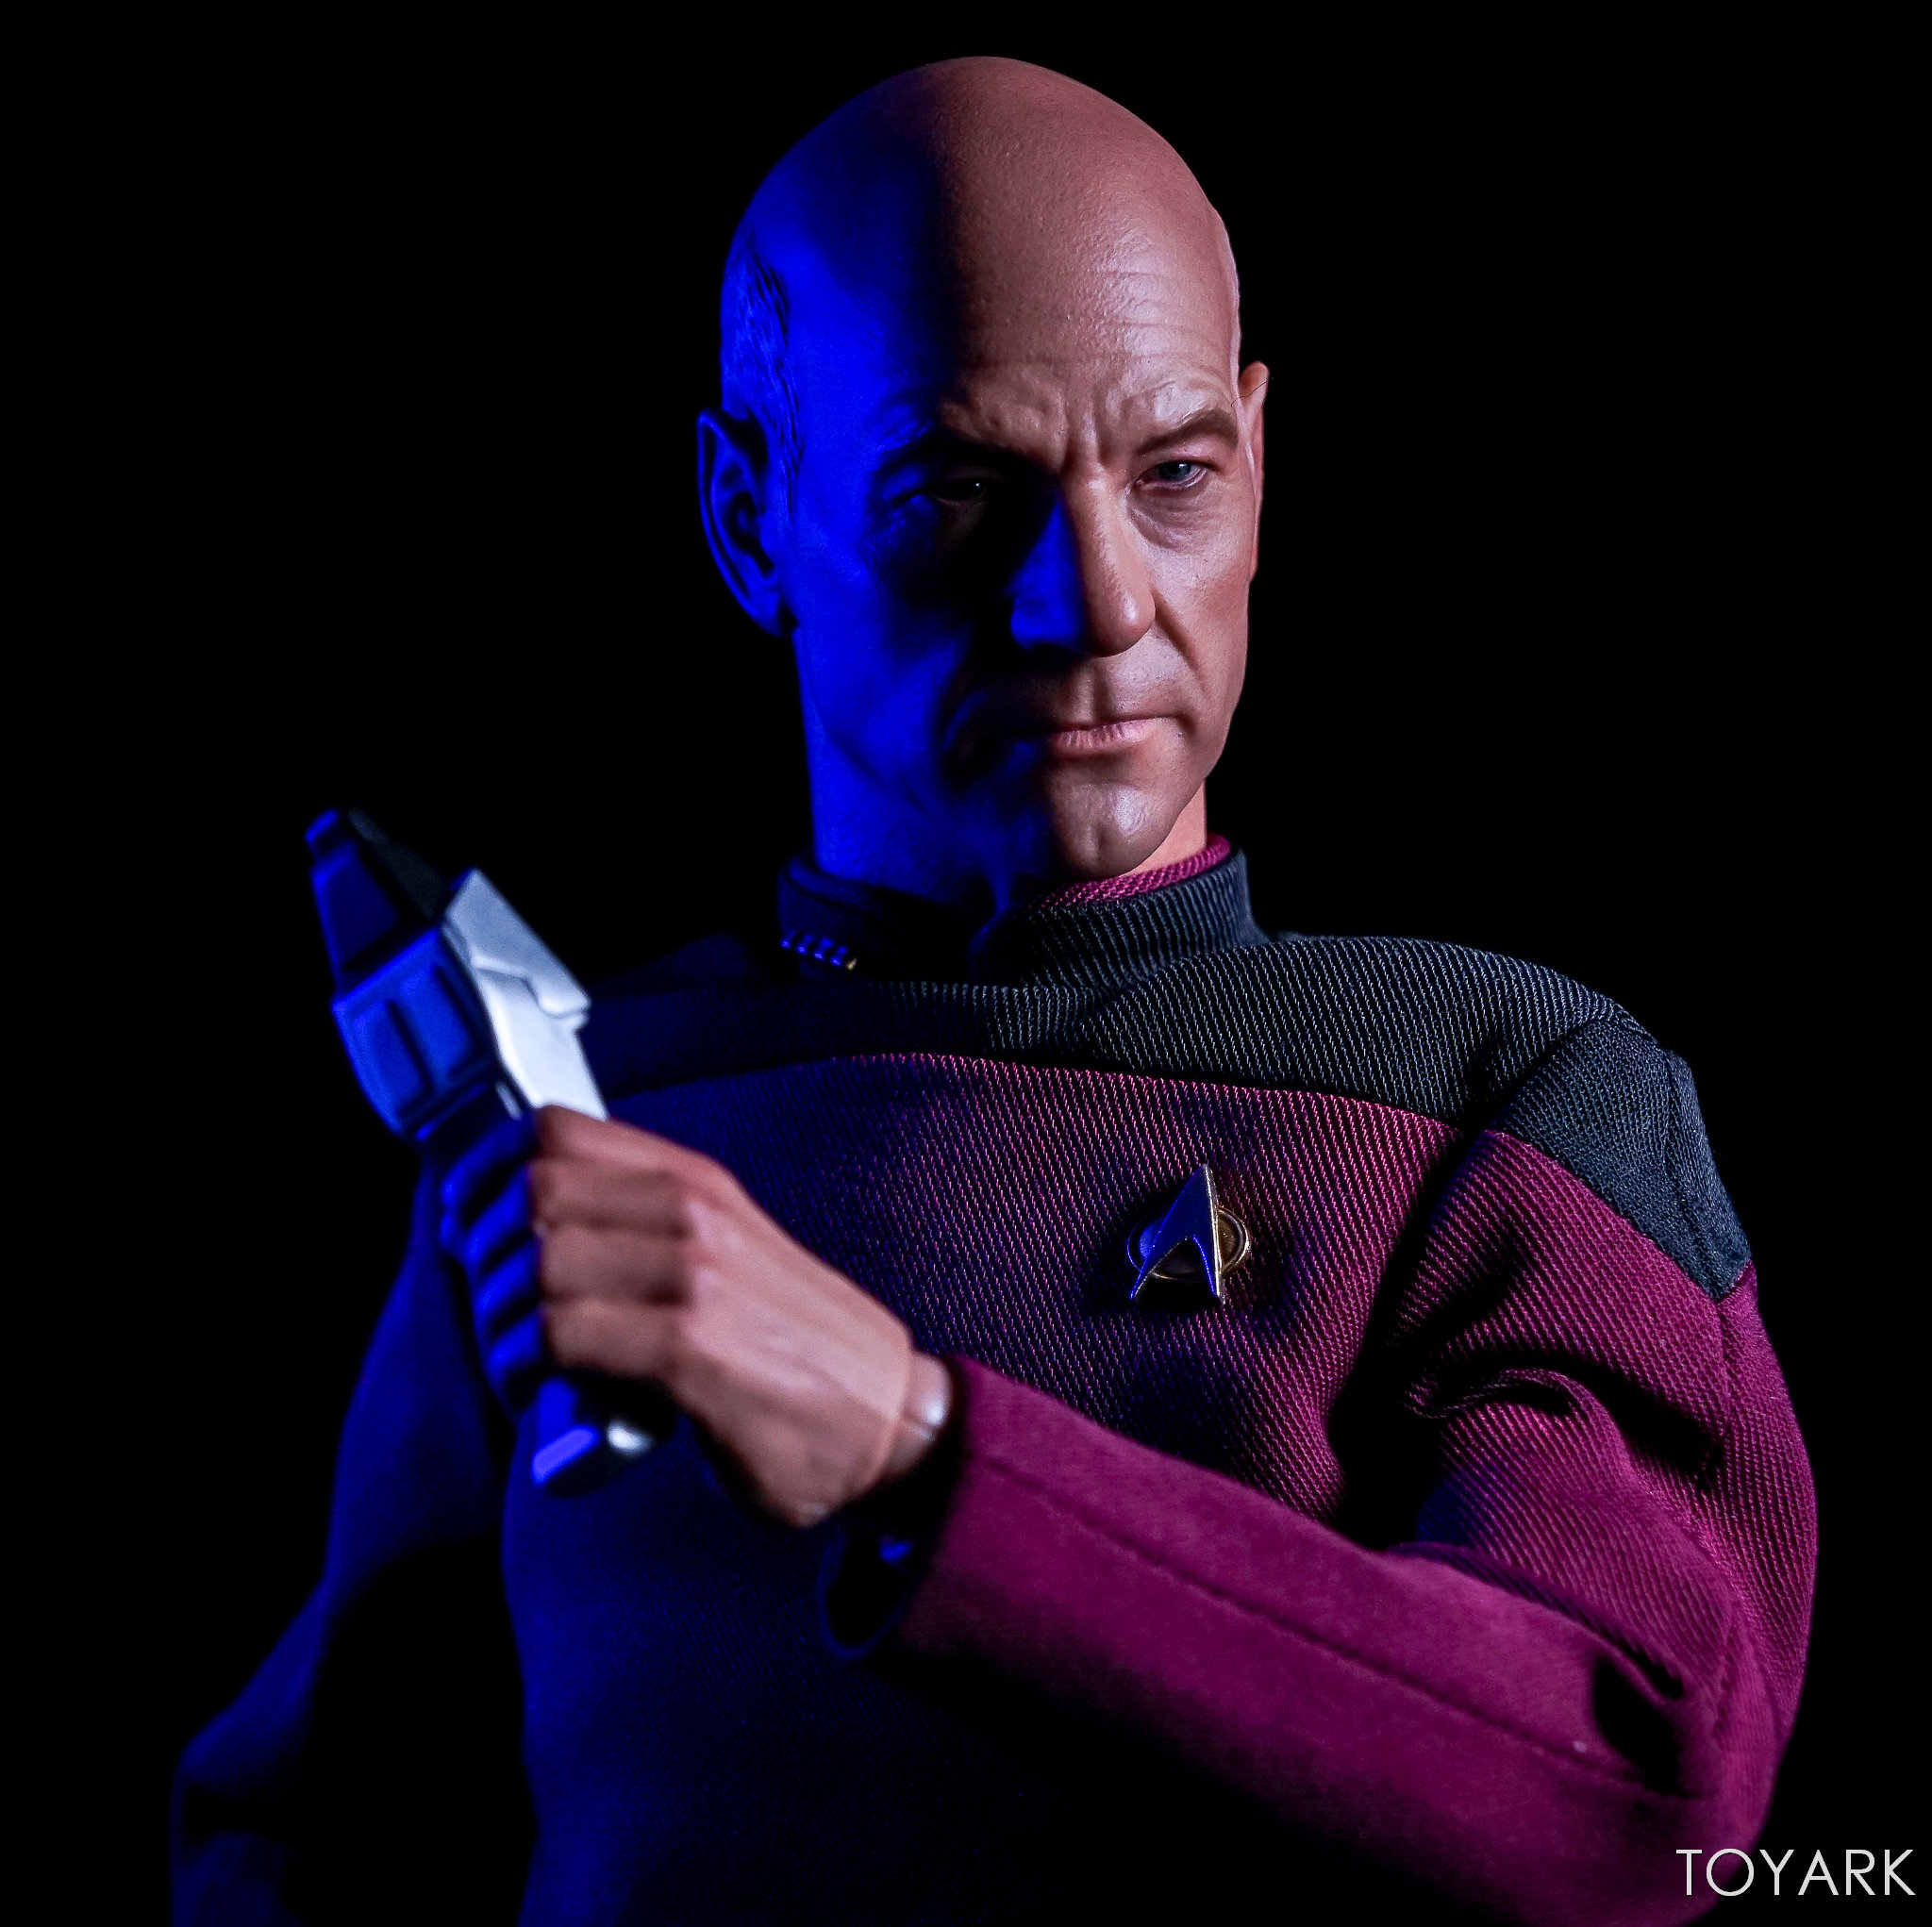 http://news.toyark.com/wp-content/uploads/sites/4/2017/10/Qmx-Star-Trek-TNG-Captain-Picard-046.jpg